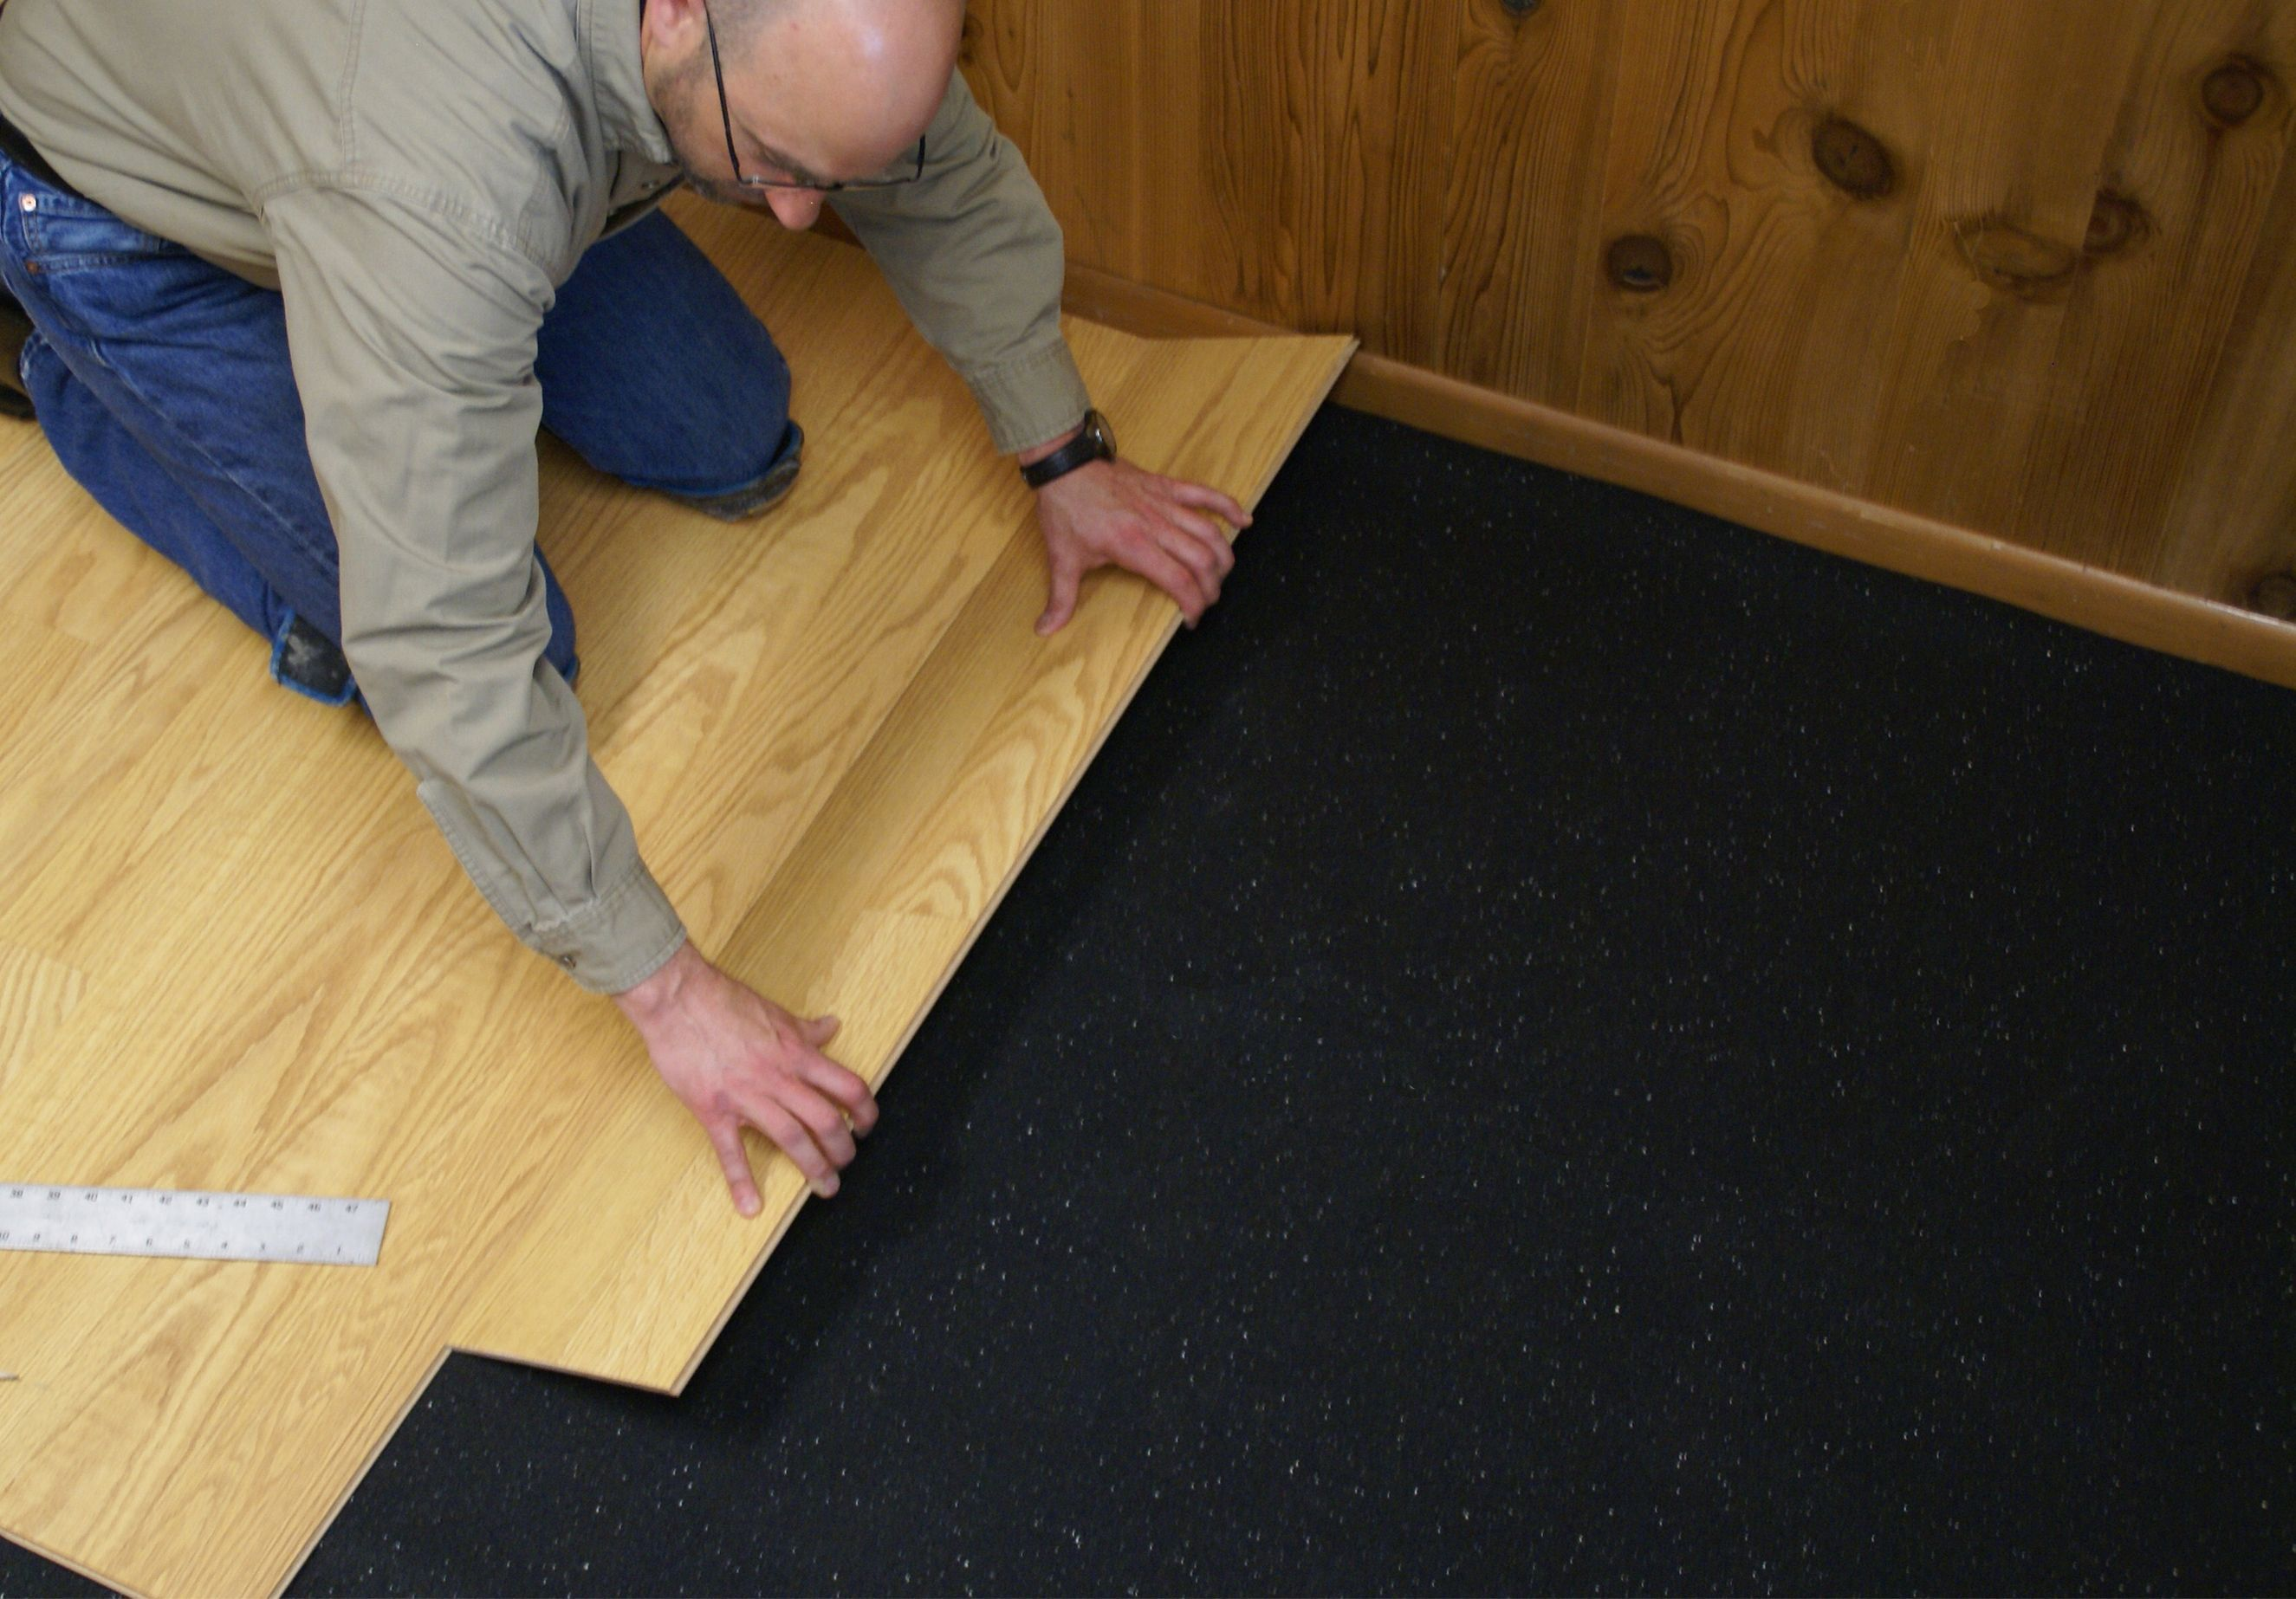 Hardwood Floor Underlayment Moisture Barrier New Wood Flooring - Laying vapor barrier for laminate flooring